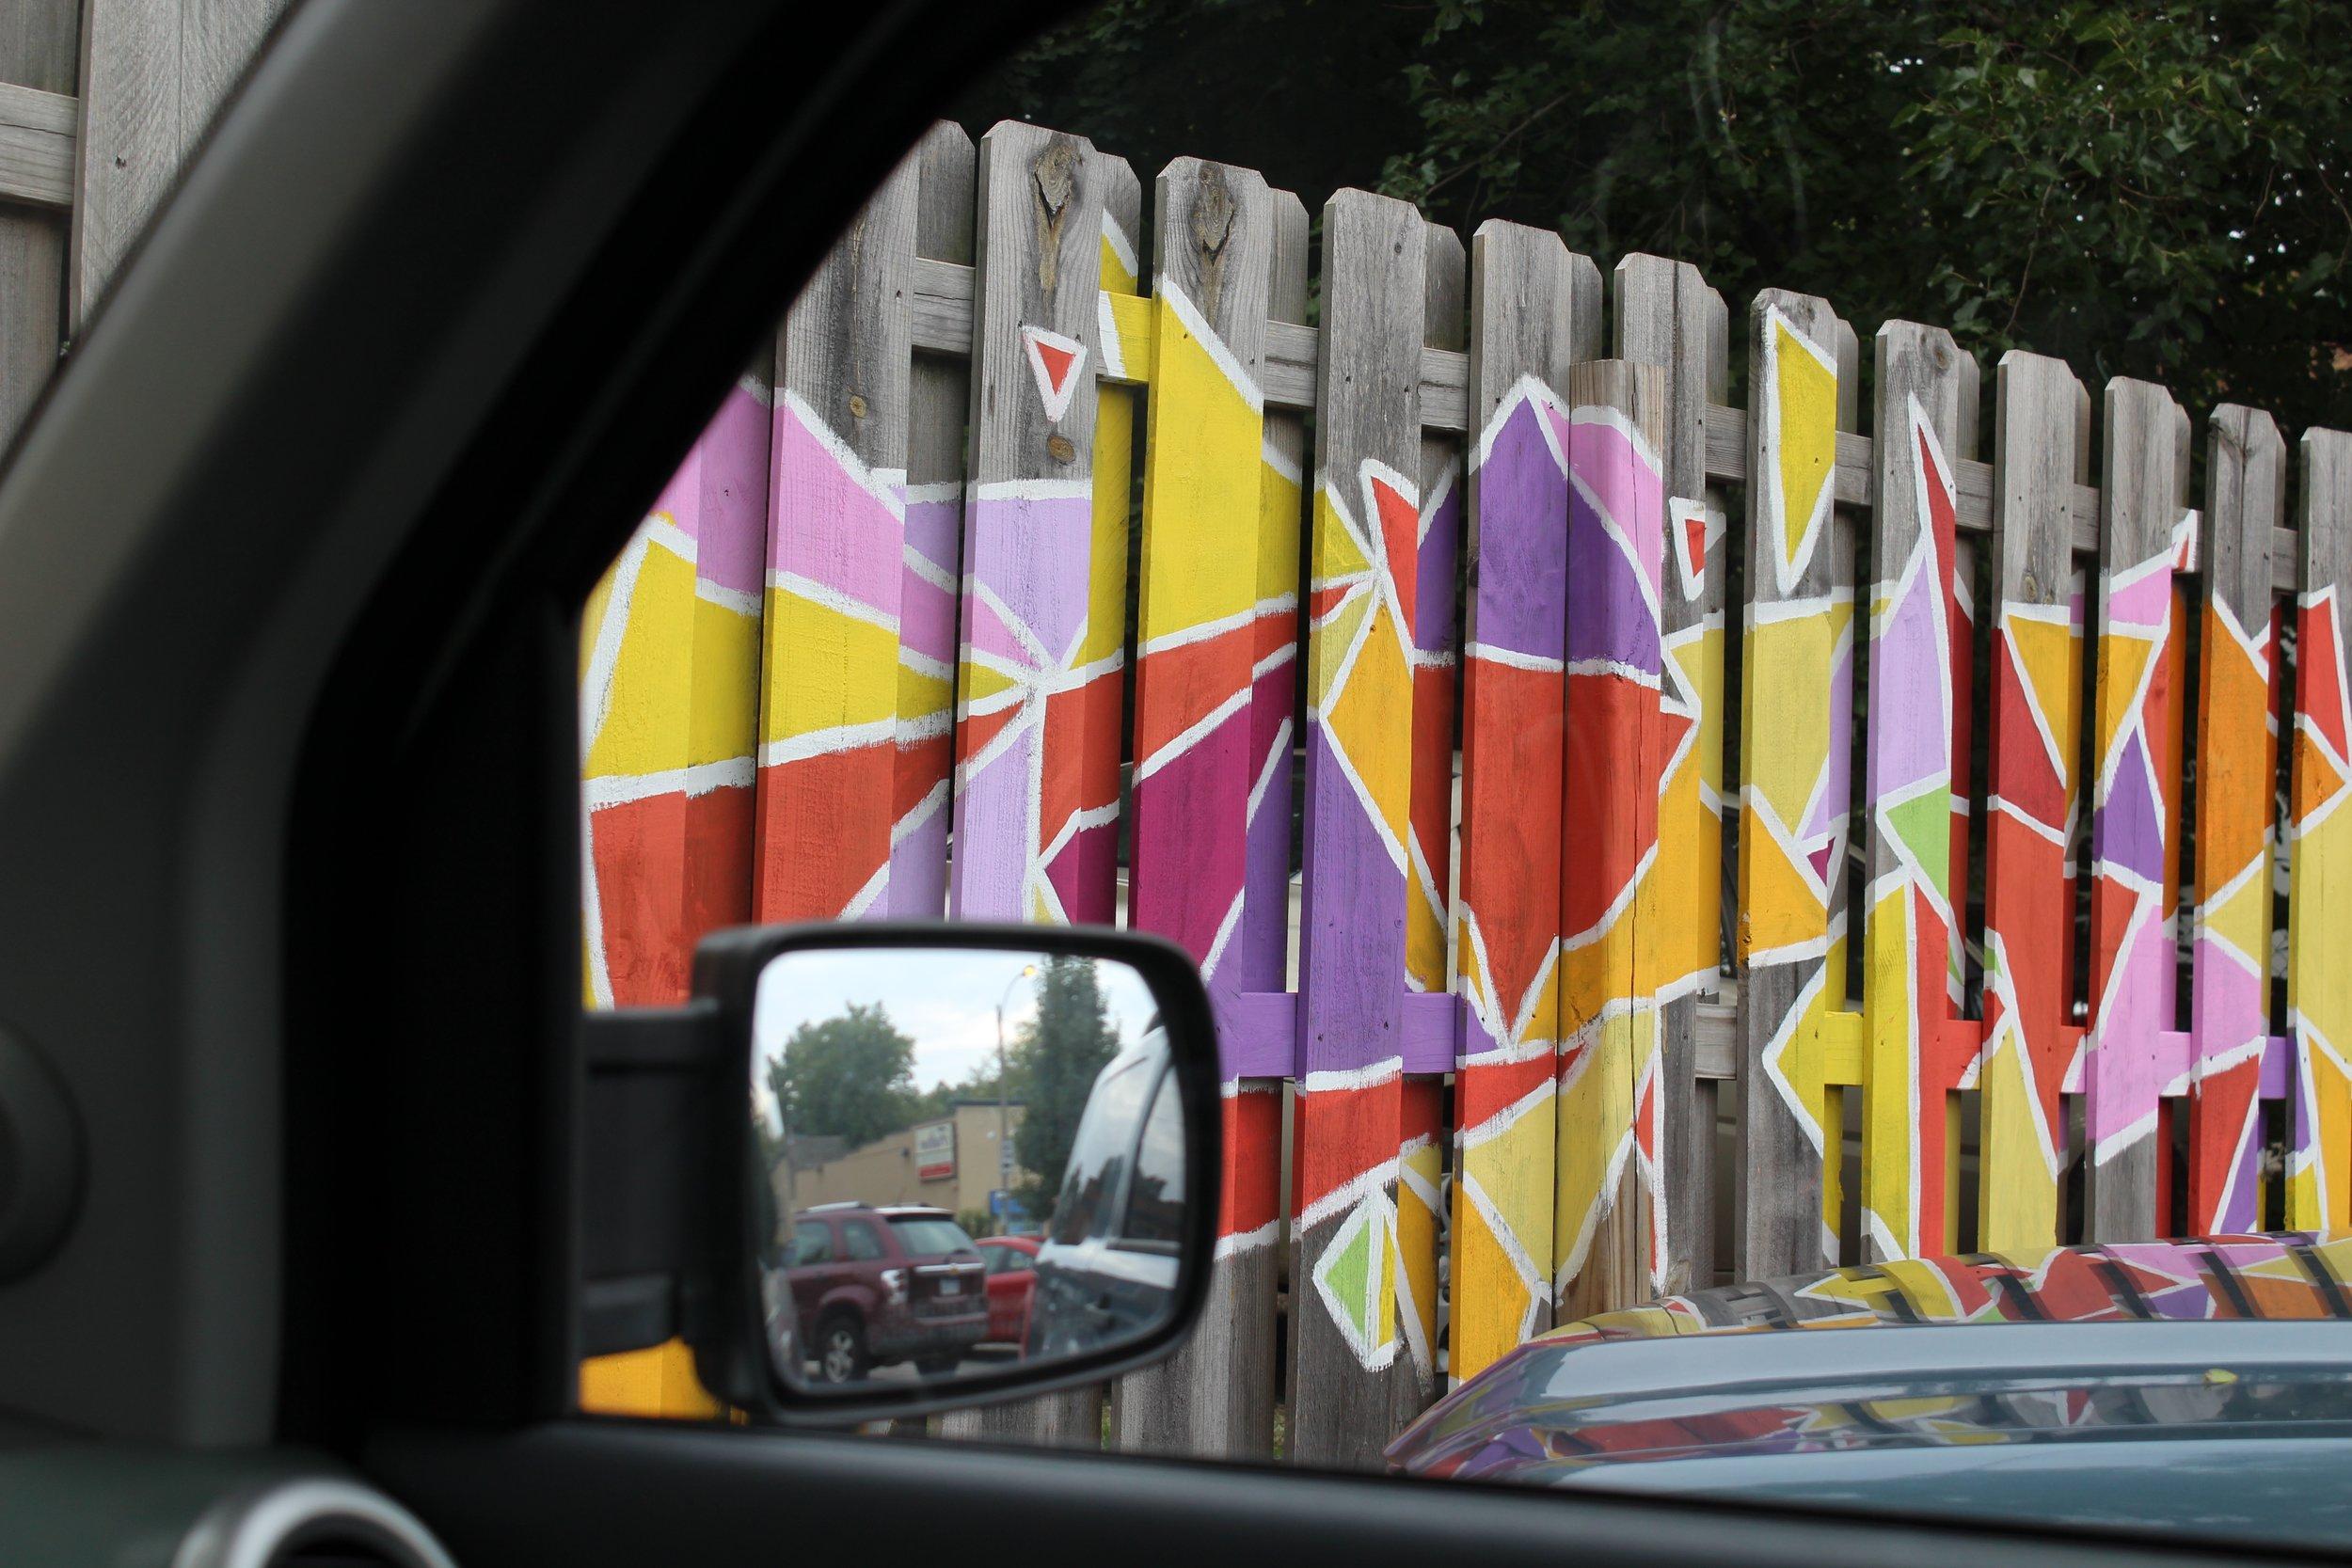 Detail through car window of mural on fence